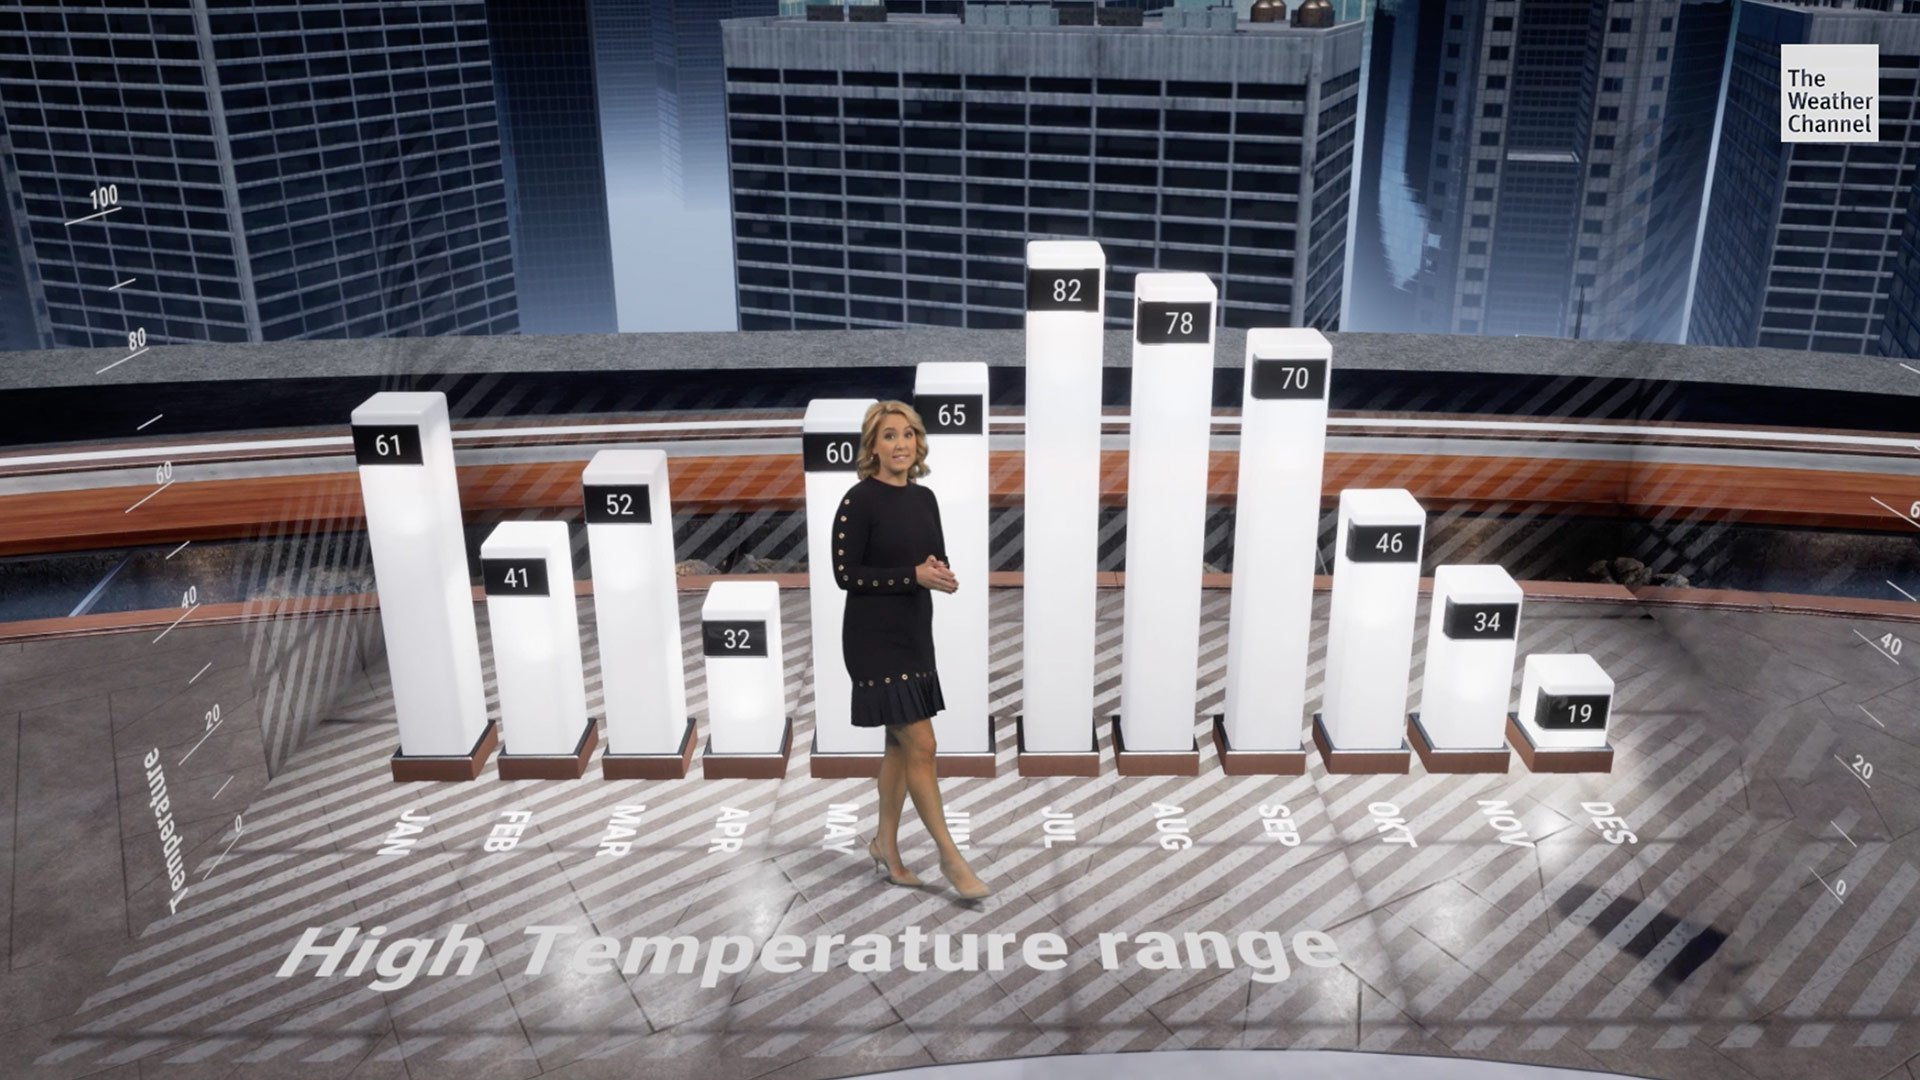 The Weather Channel Daily Immersive Mixed Reality